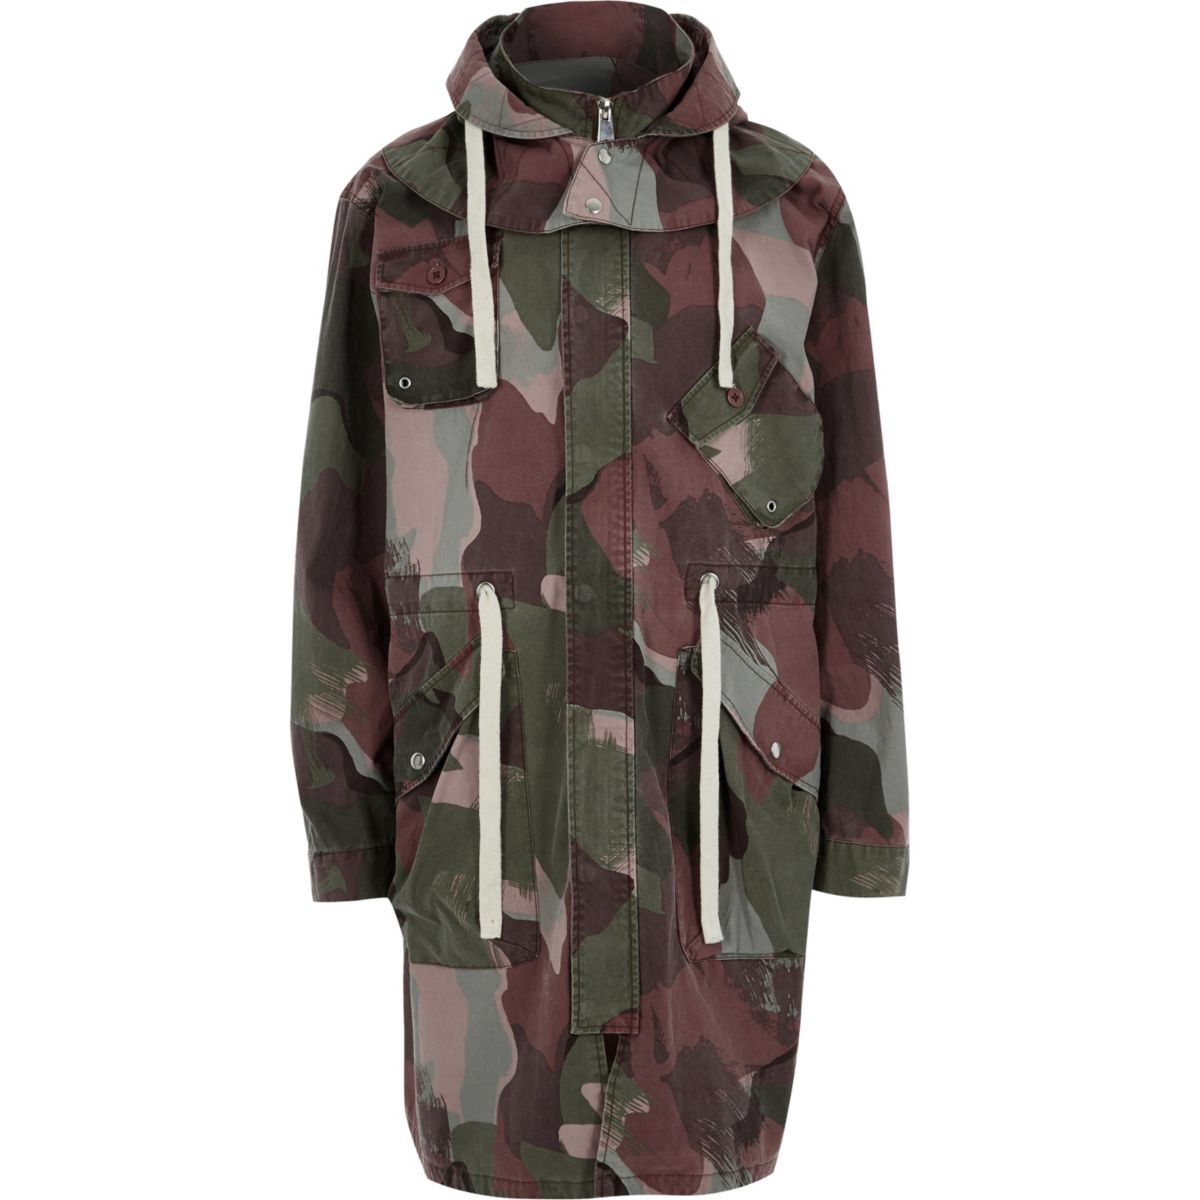 Khaki green Design Forum camo parka